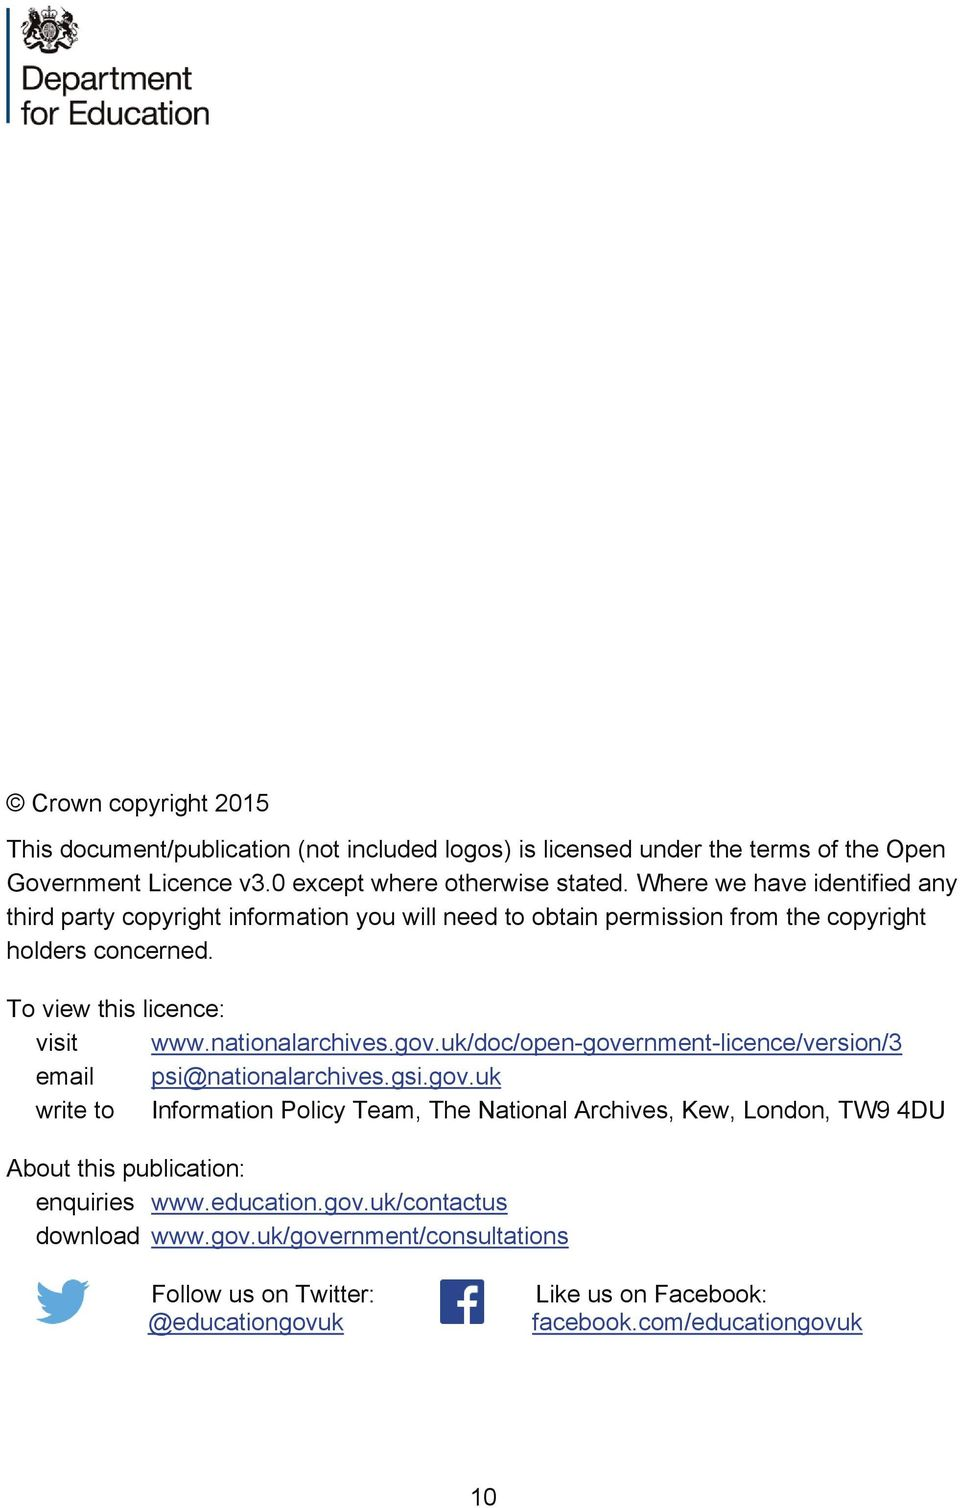 nationalarchives.gov.uk/doc/open-government-licence/version/3 email psi@nationalarchives.gsi.gov.uk write to Information Policy Team, The National Archives, Kew, London, TW9 4DU About this publication: enquiries www.